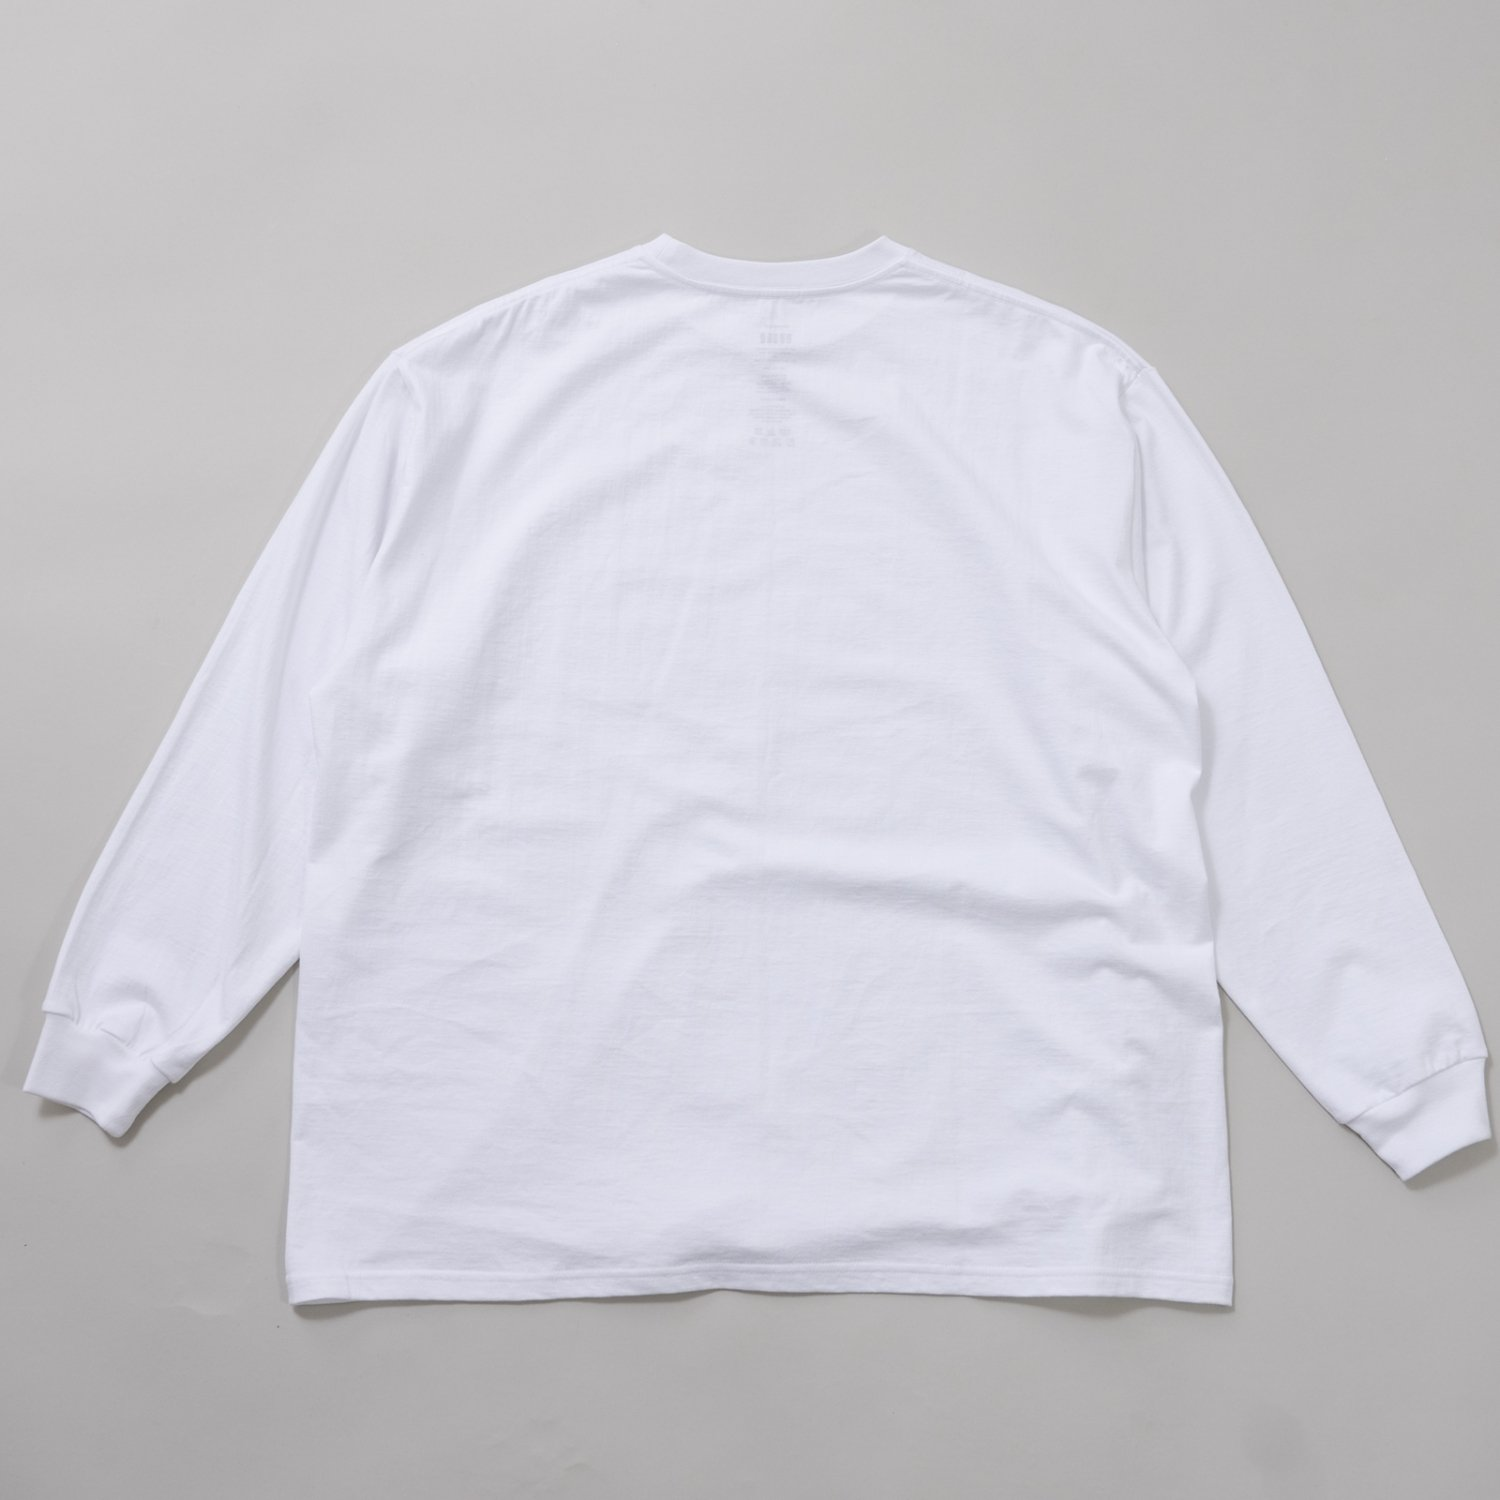 Graphpaper * L/S Oversized Tee * White